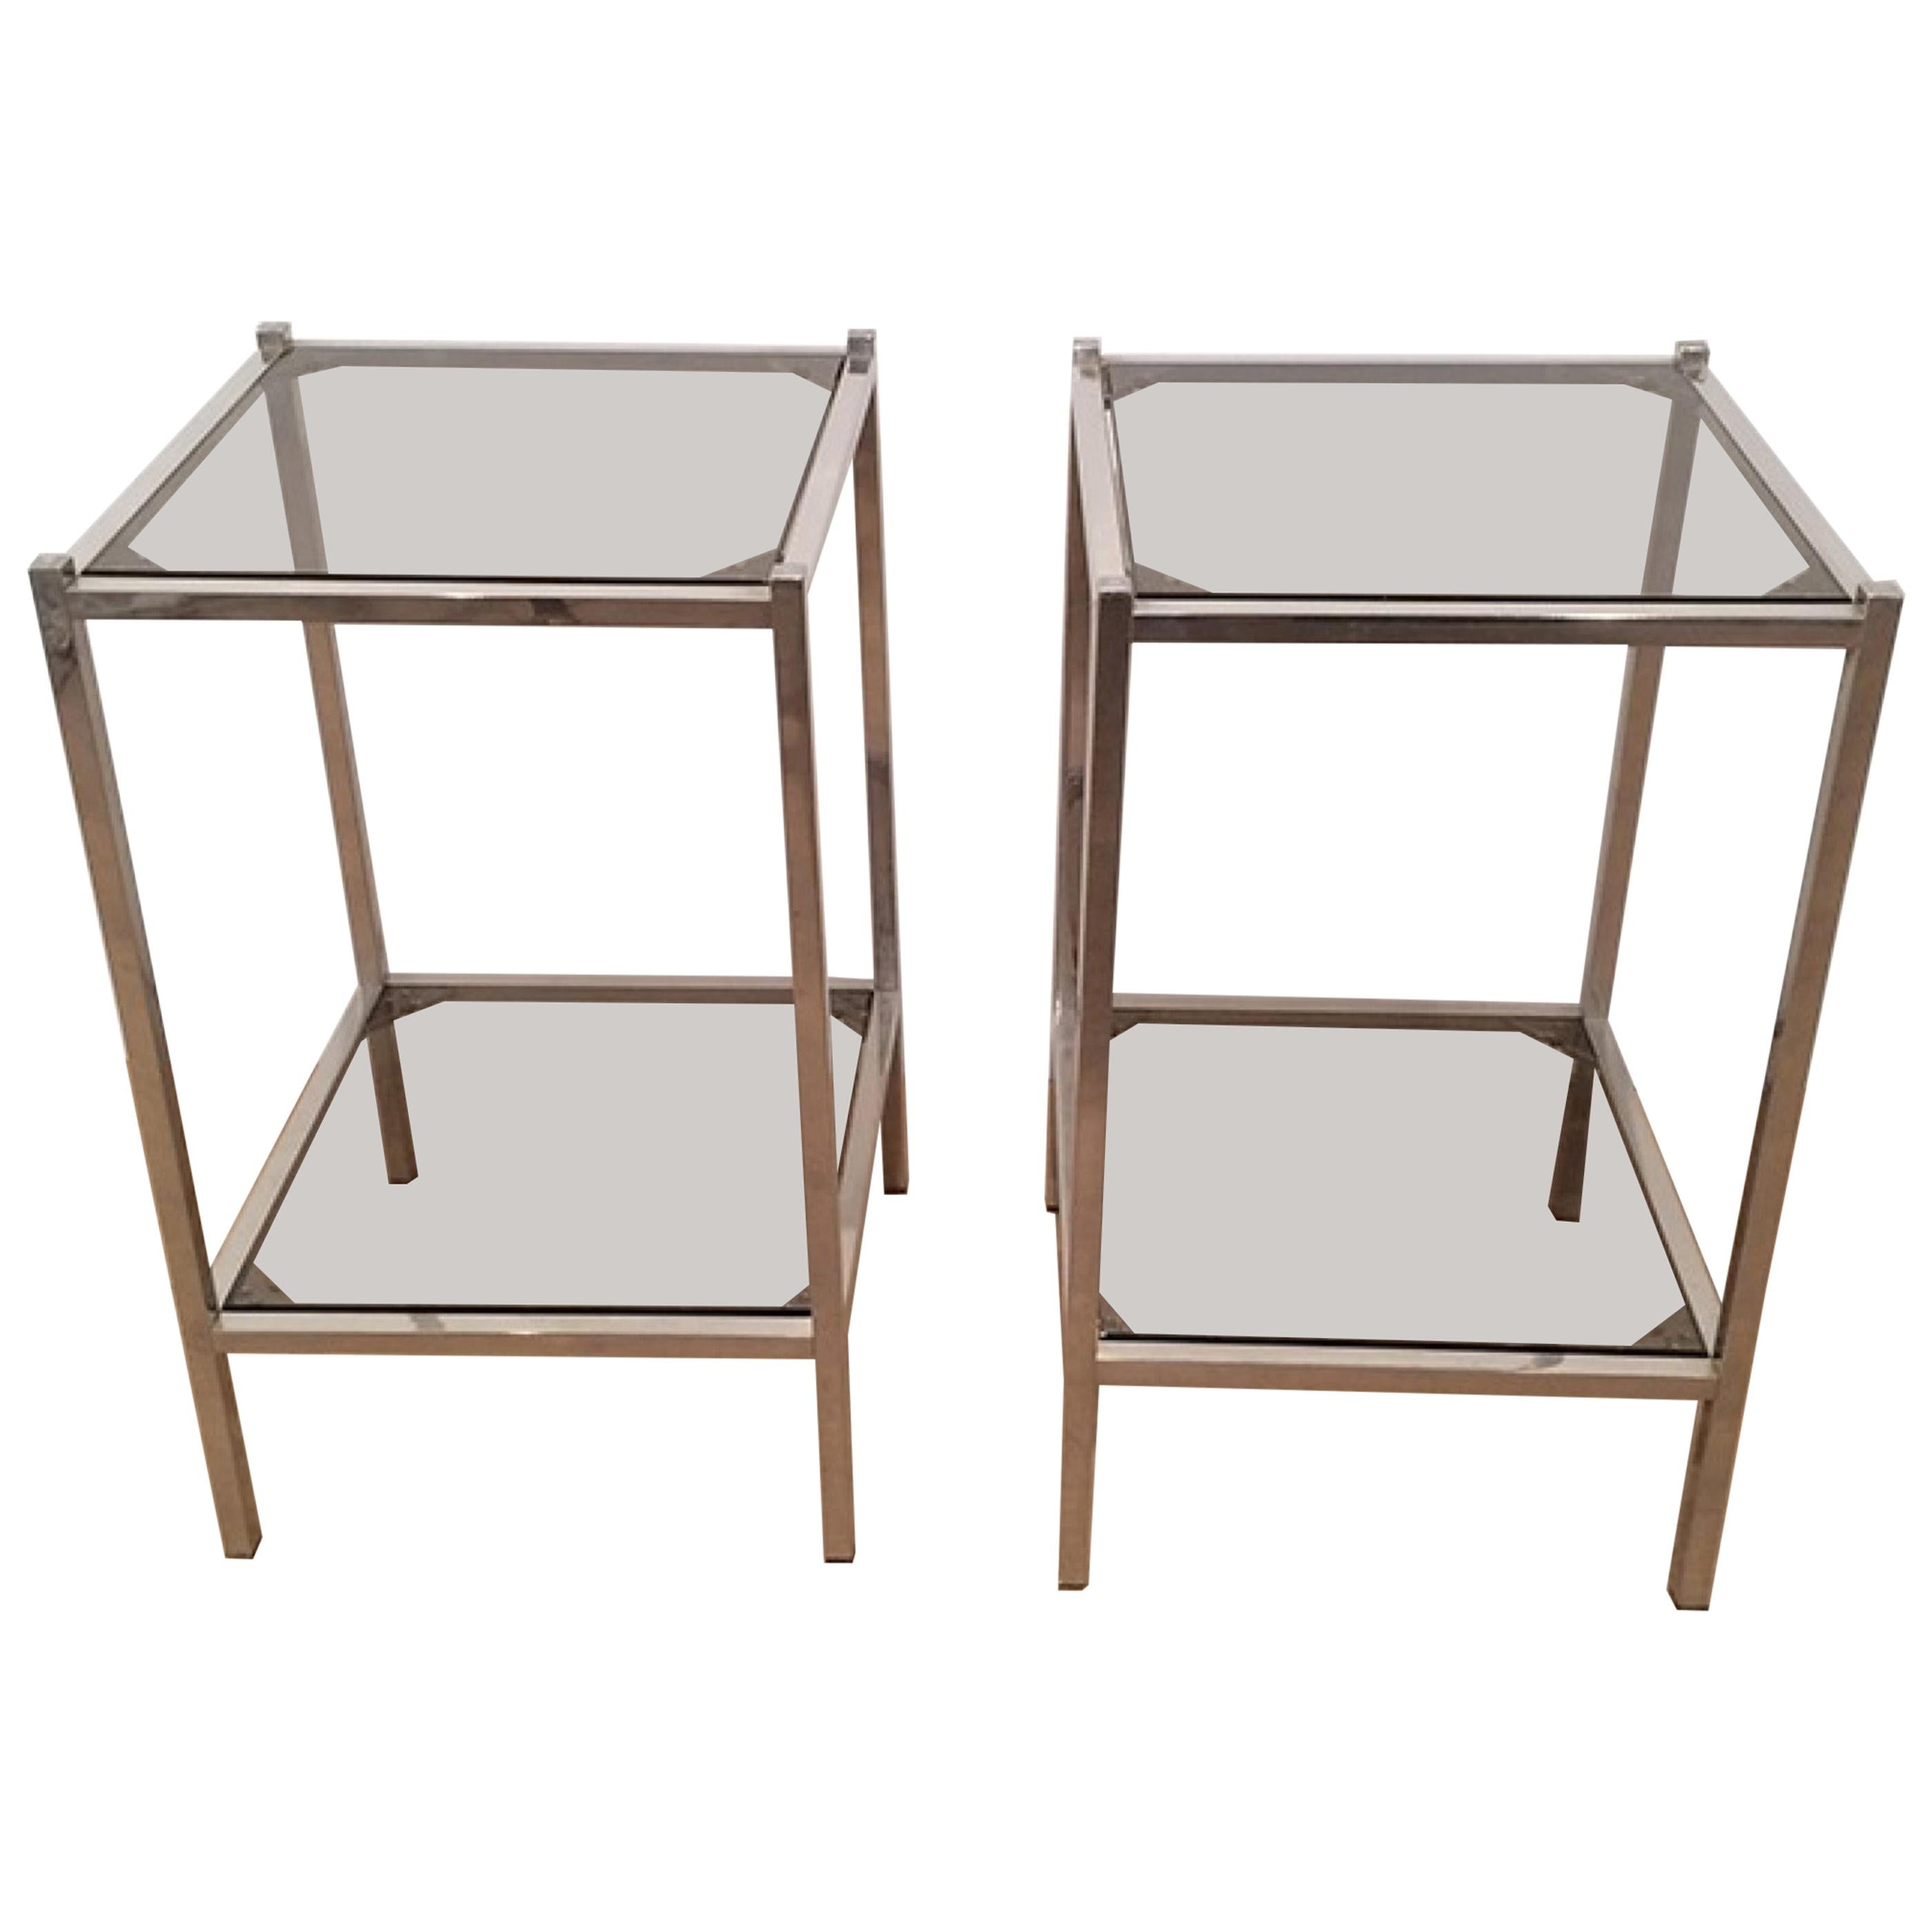 Pair of Chrome Side Tables, circa 1970